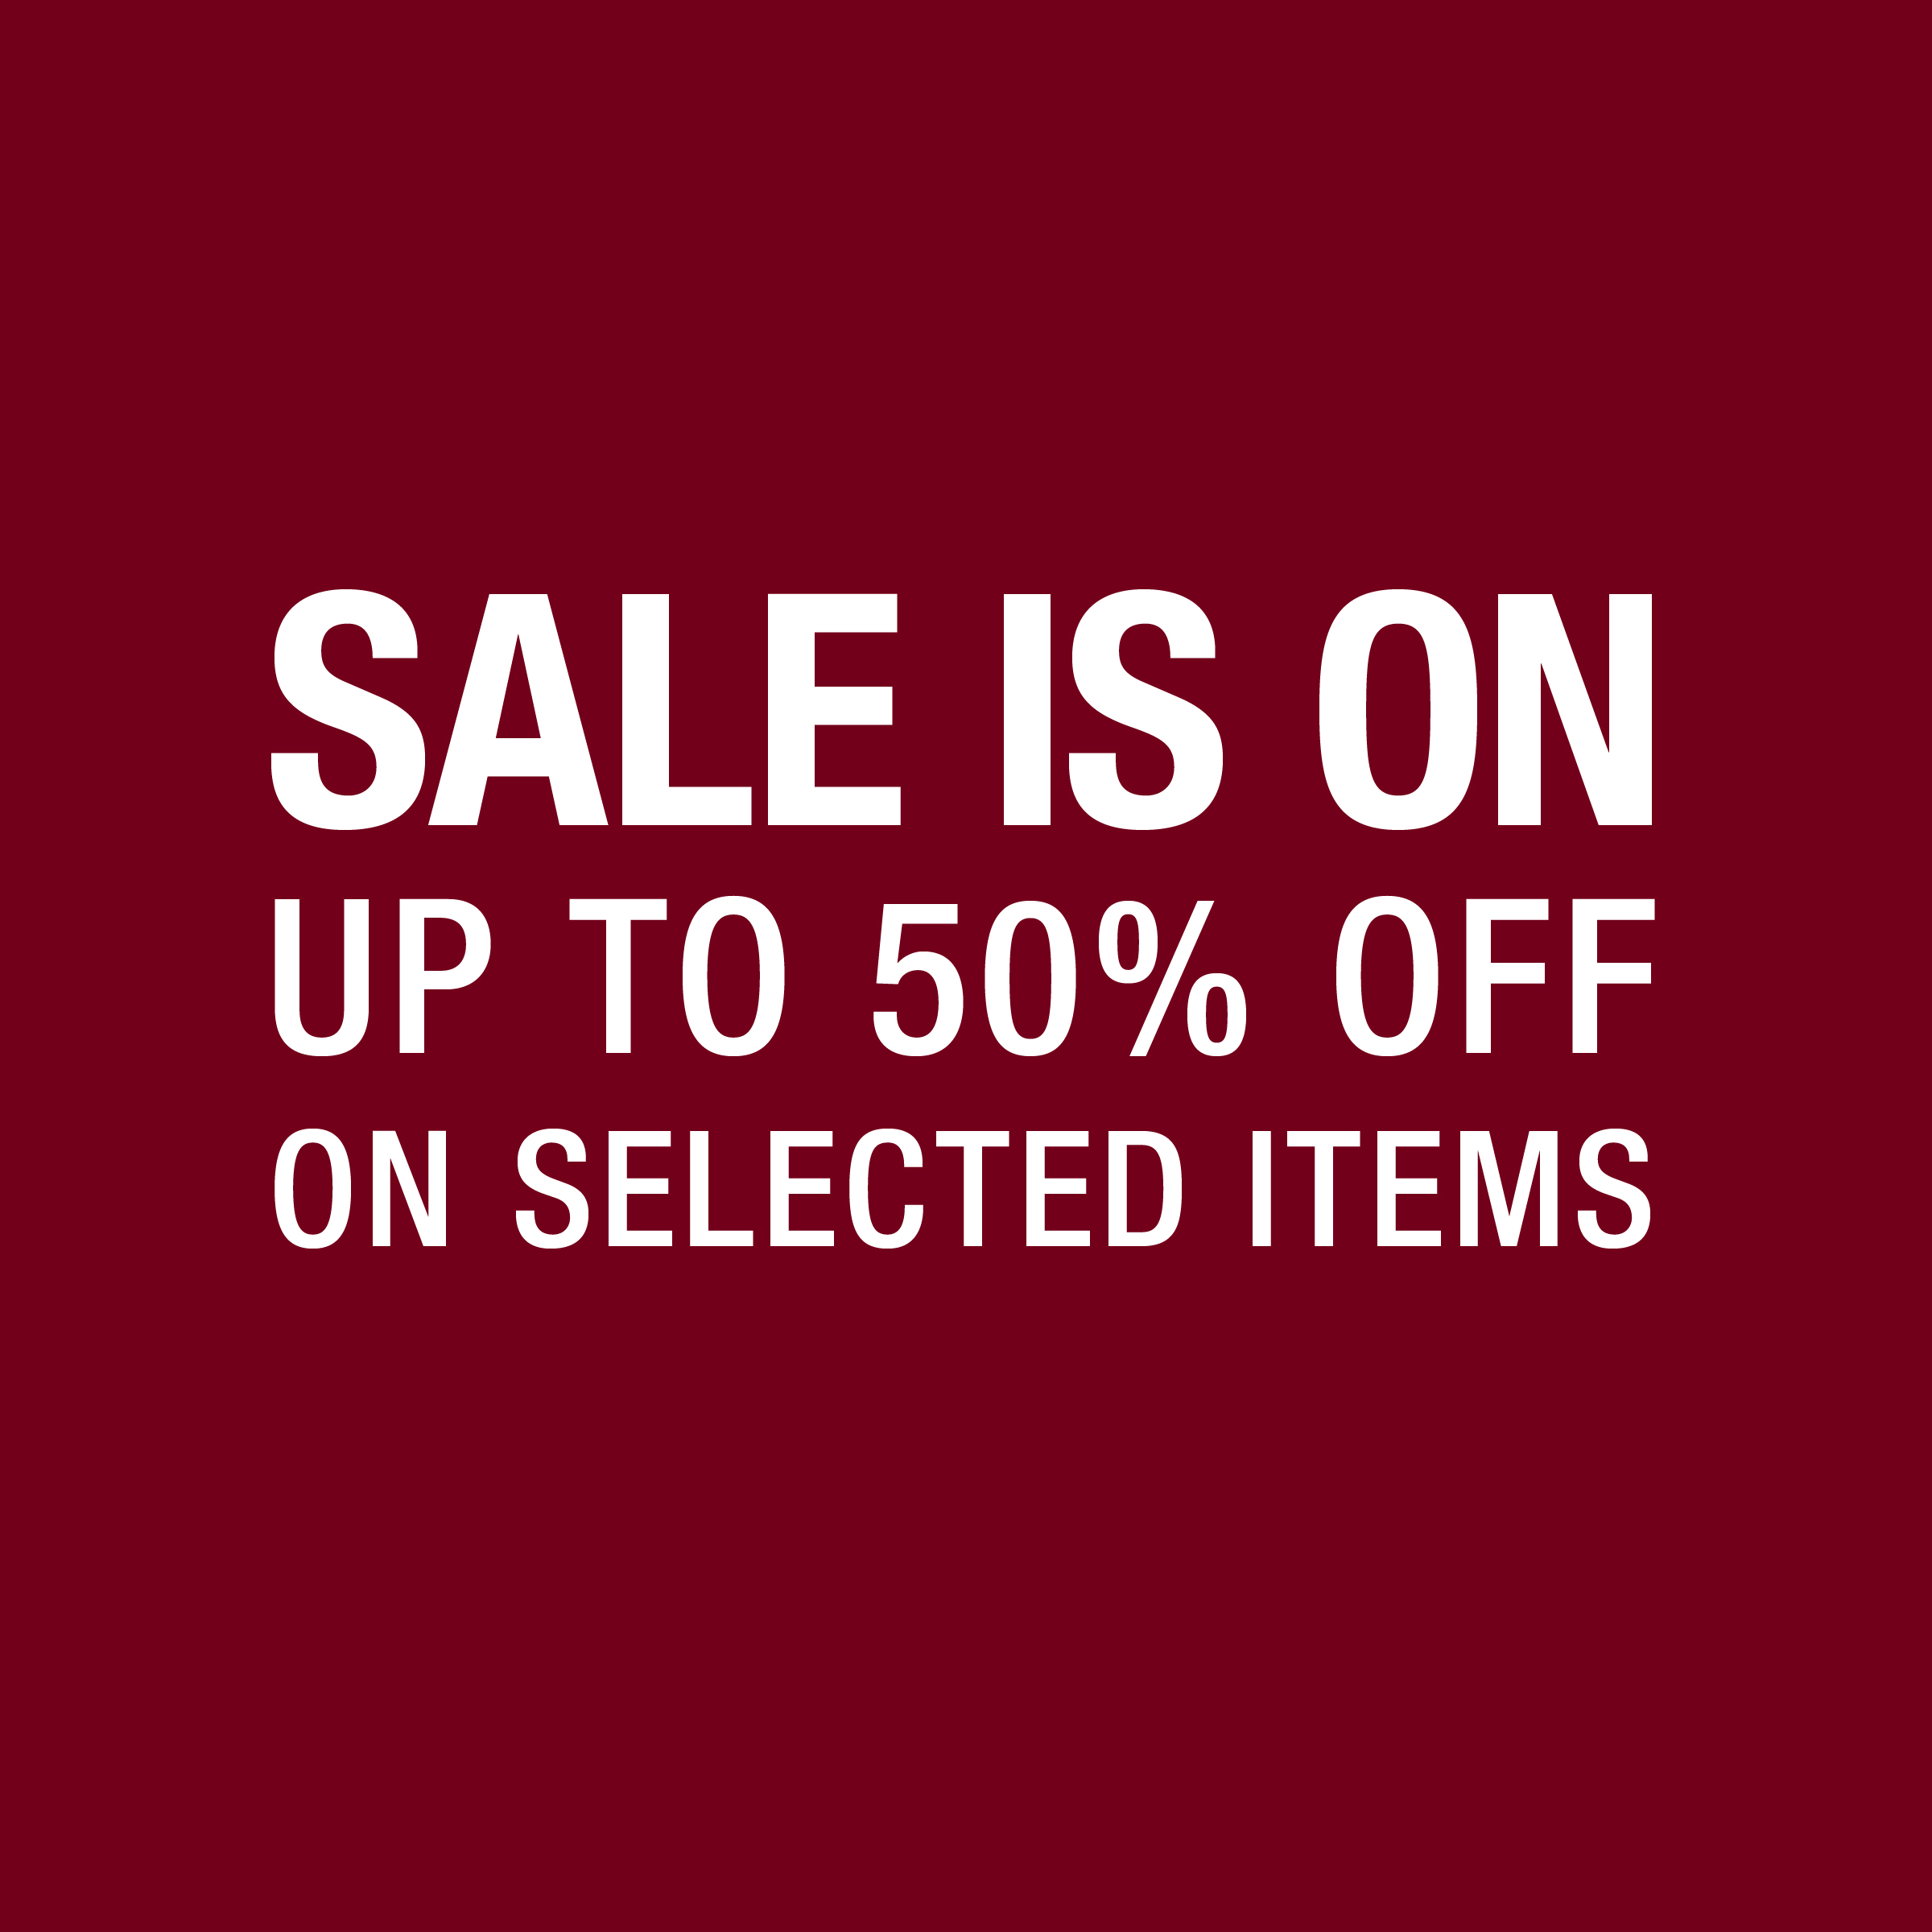 NOW UP TO 50% OFF!